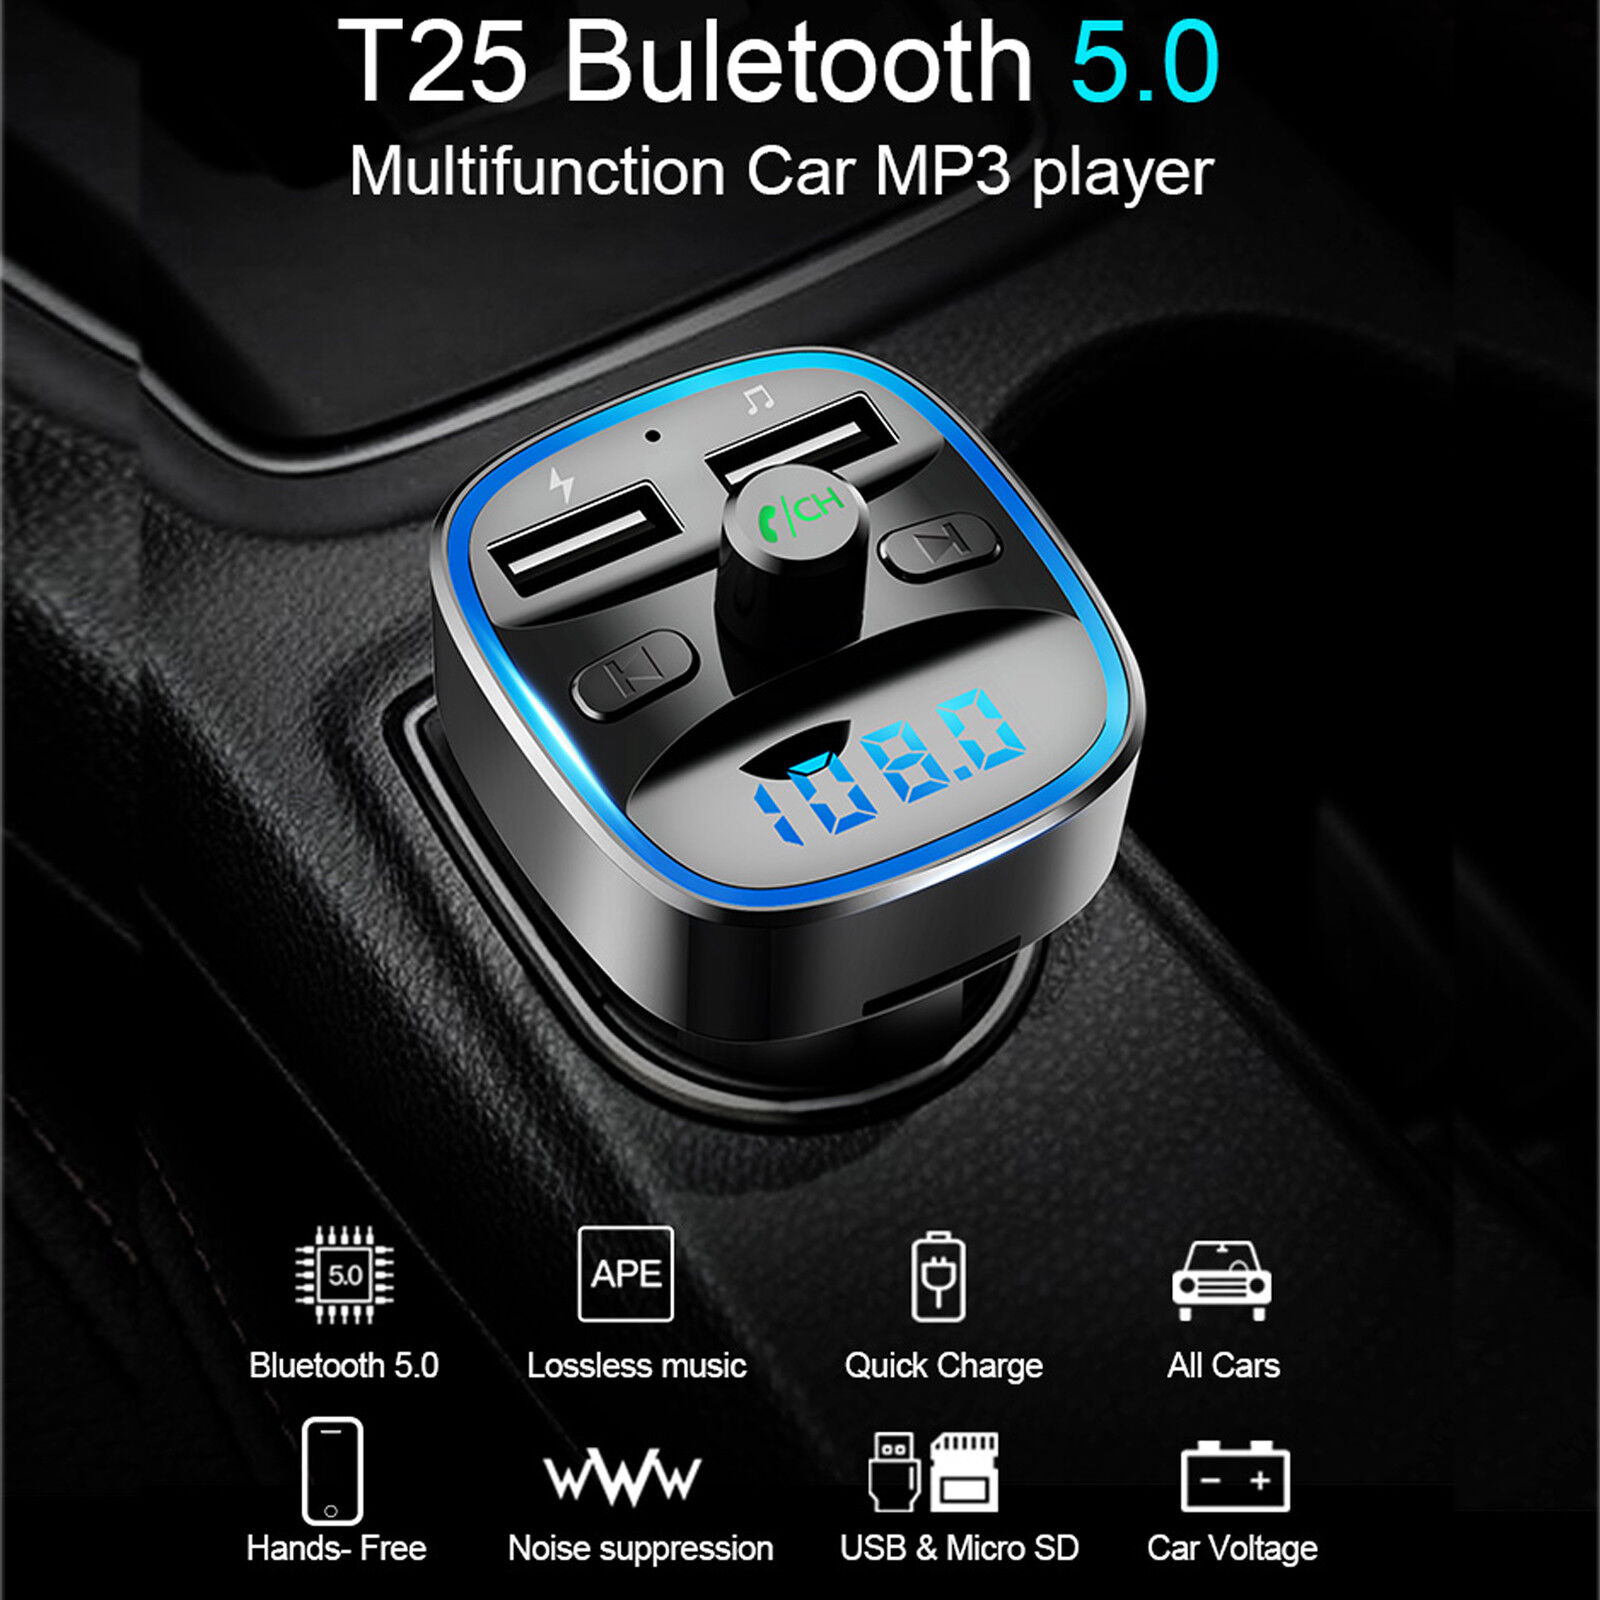 Trasmettitore FM BLUETOOTH 5.0 WIRELESS T25 Auto Vivavoce Lettore MP3 USB CHARGE